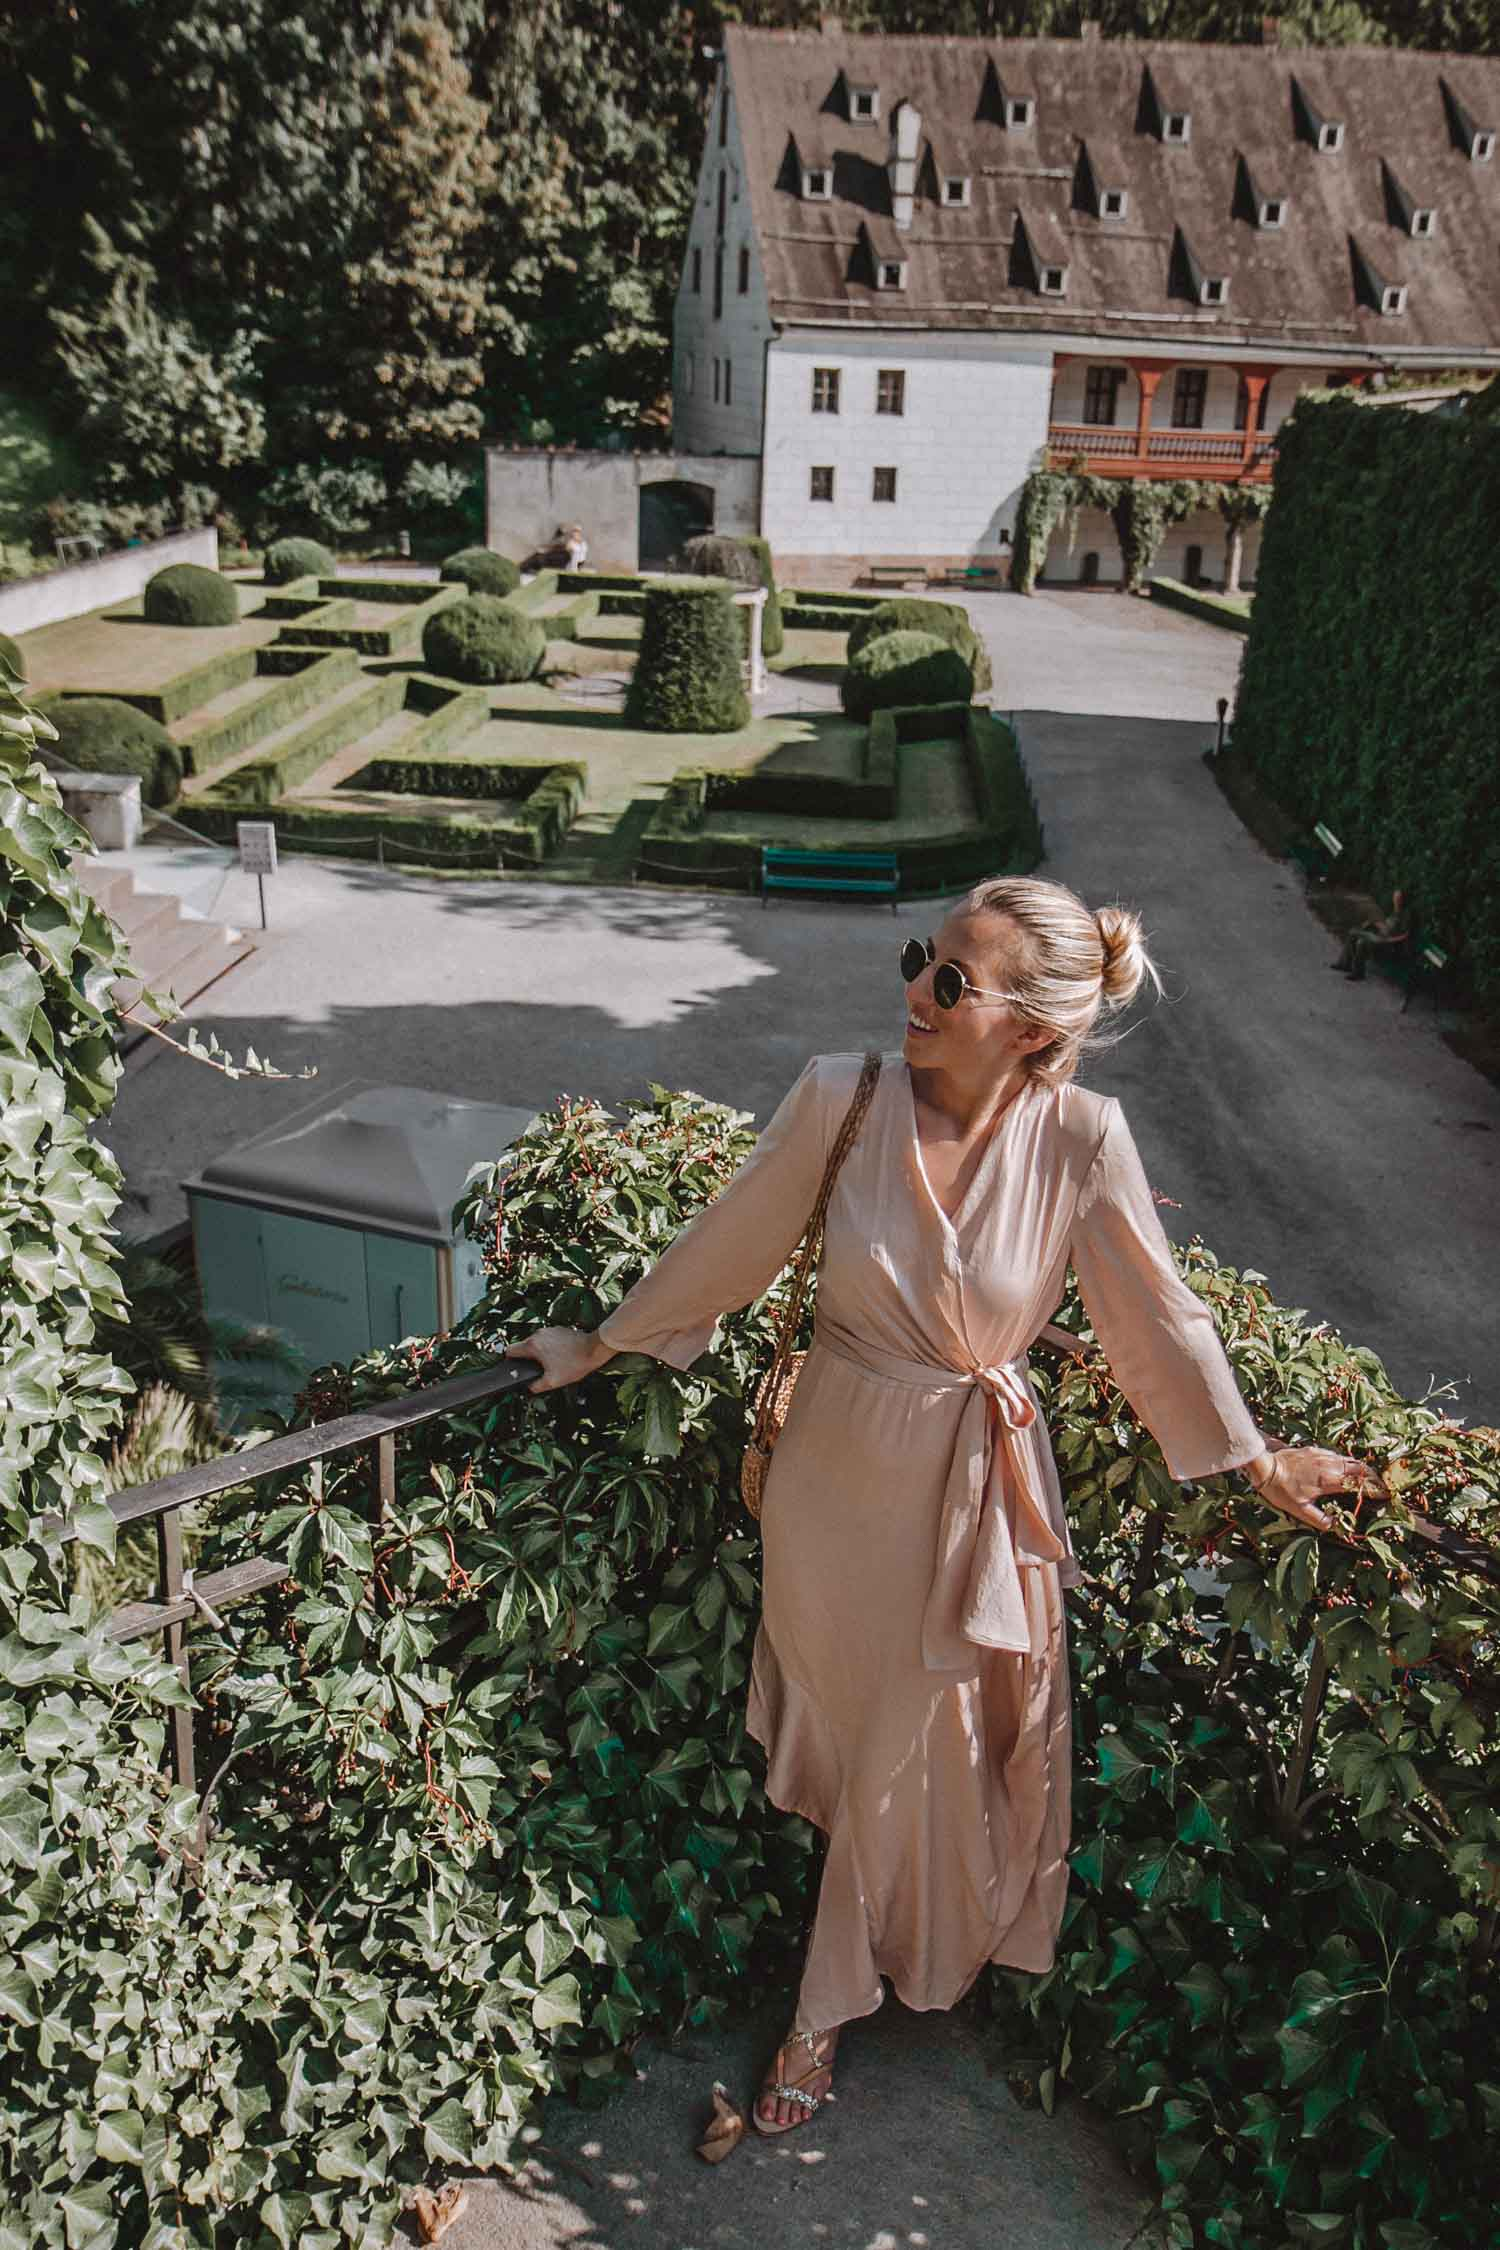 Princess moment maxi dress schloss ambras innsbruck